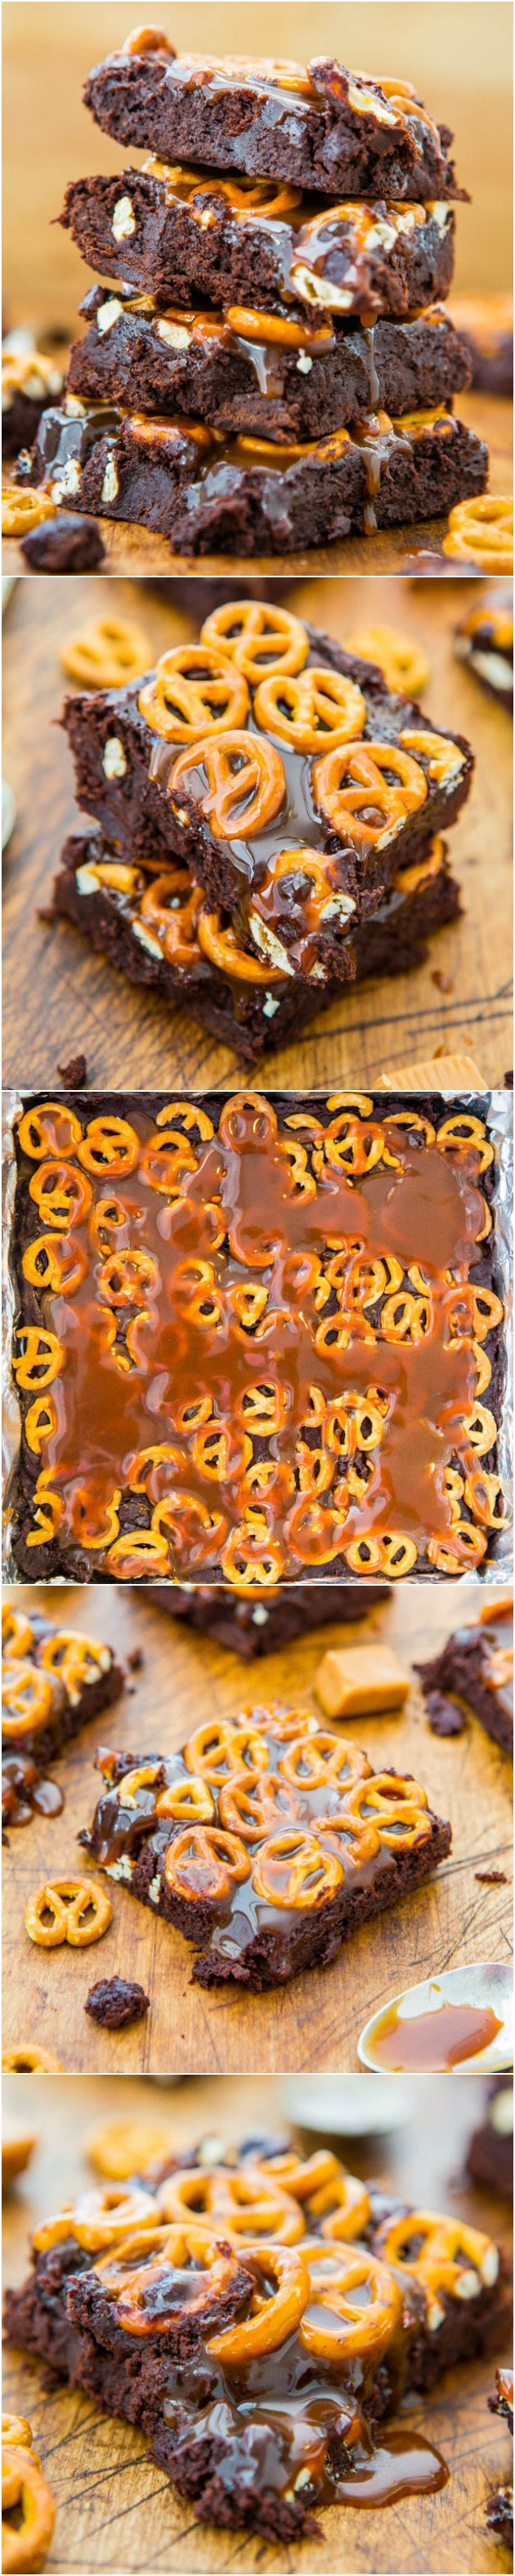 alted Caramel Pretzel Fudgy Brownies - Supremely fudgy scratch brownies as easy as a mix. Salty-and-sweet & dripping in caramel! Easy, no-mixer recipe at averiecooks.com